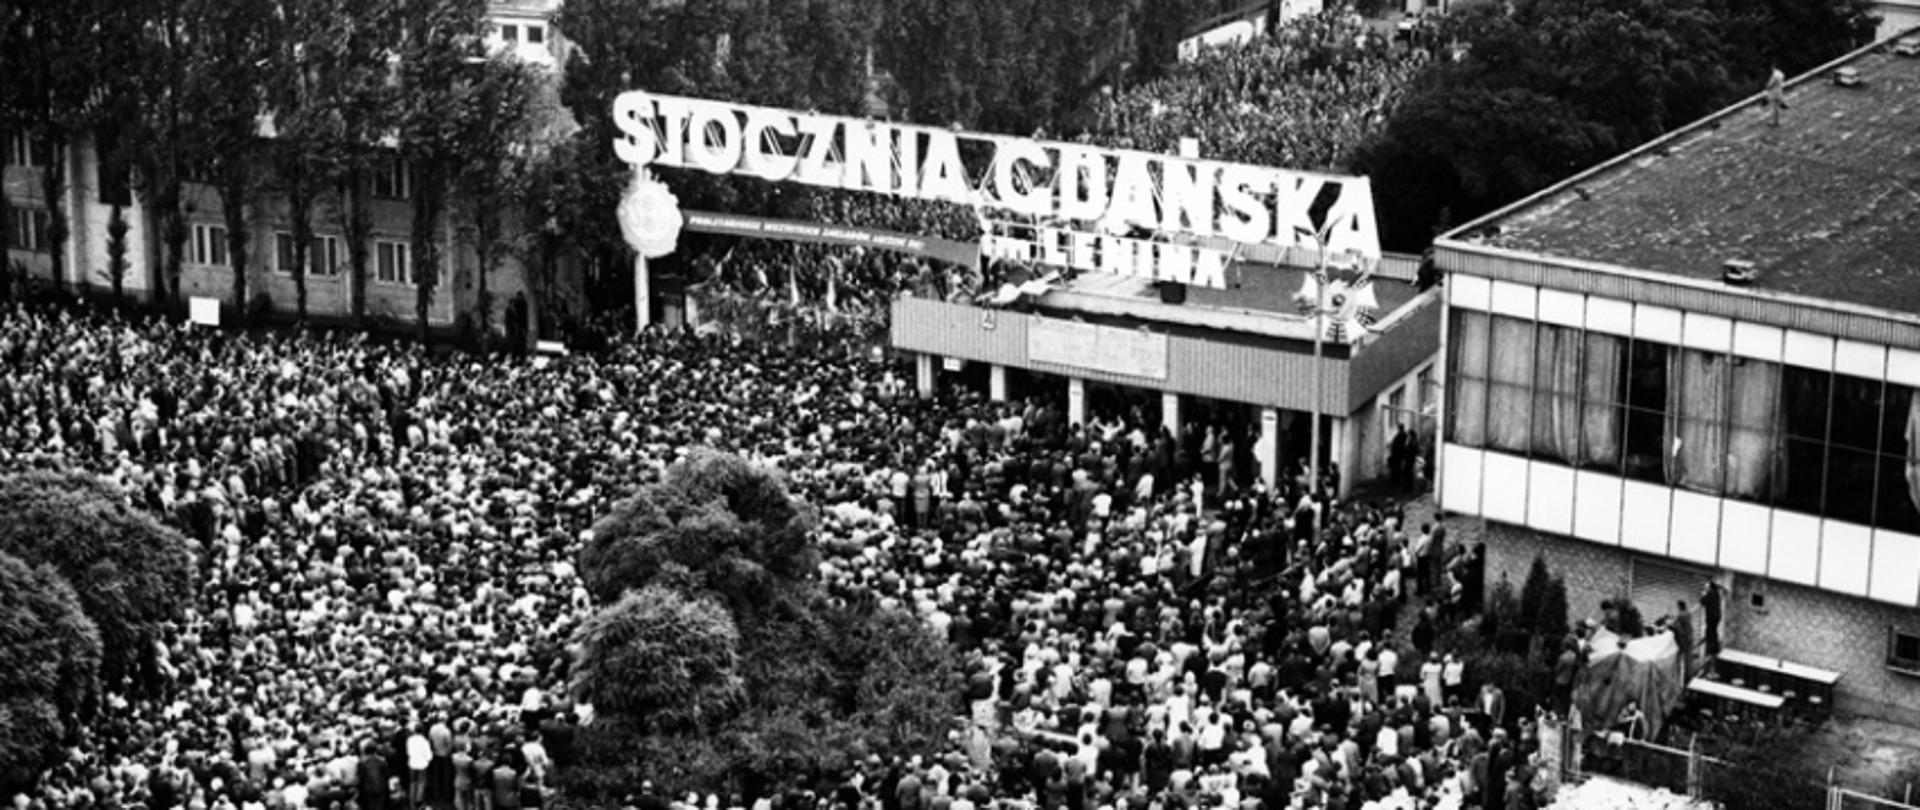 "August strike at Lenin's Shipyard in Gdansk. Top view of Gate No. 2 and the citizens and shipyard workers gathered below it. Above the gate, there is a banner with the slogan ""PROLETARIANS OF ALL FACTORIES UNITE!"", and on the roof of the guardhouse there are boards with 21 demands of MKS."